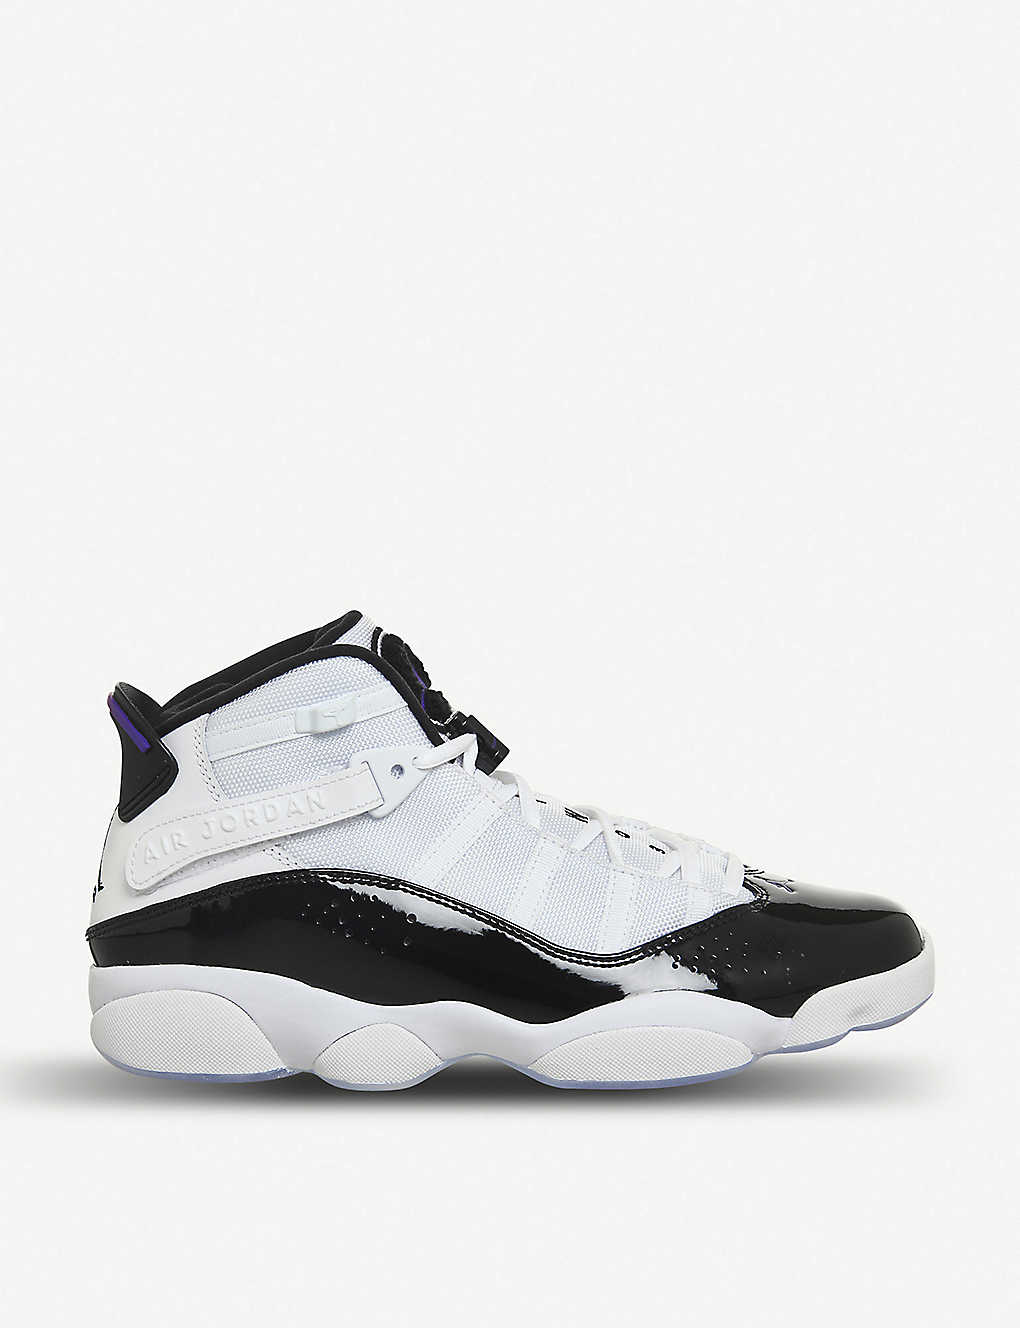 822693090f2 NIKE - Jordan 6 Rings patent-leather and mesh trainers